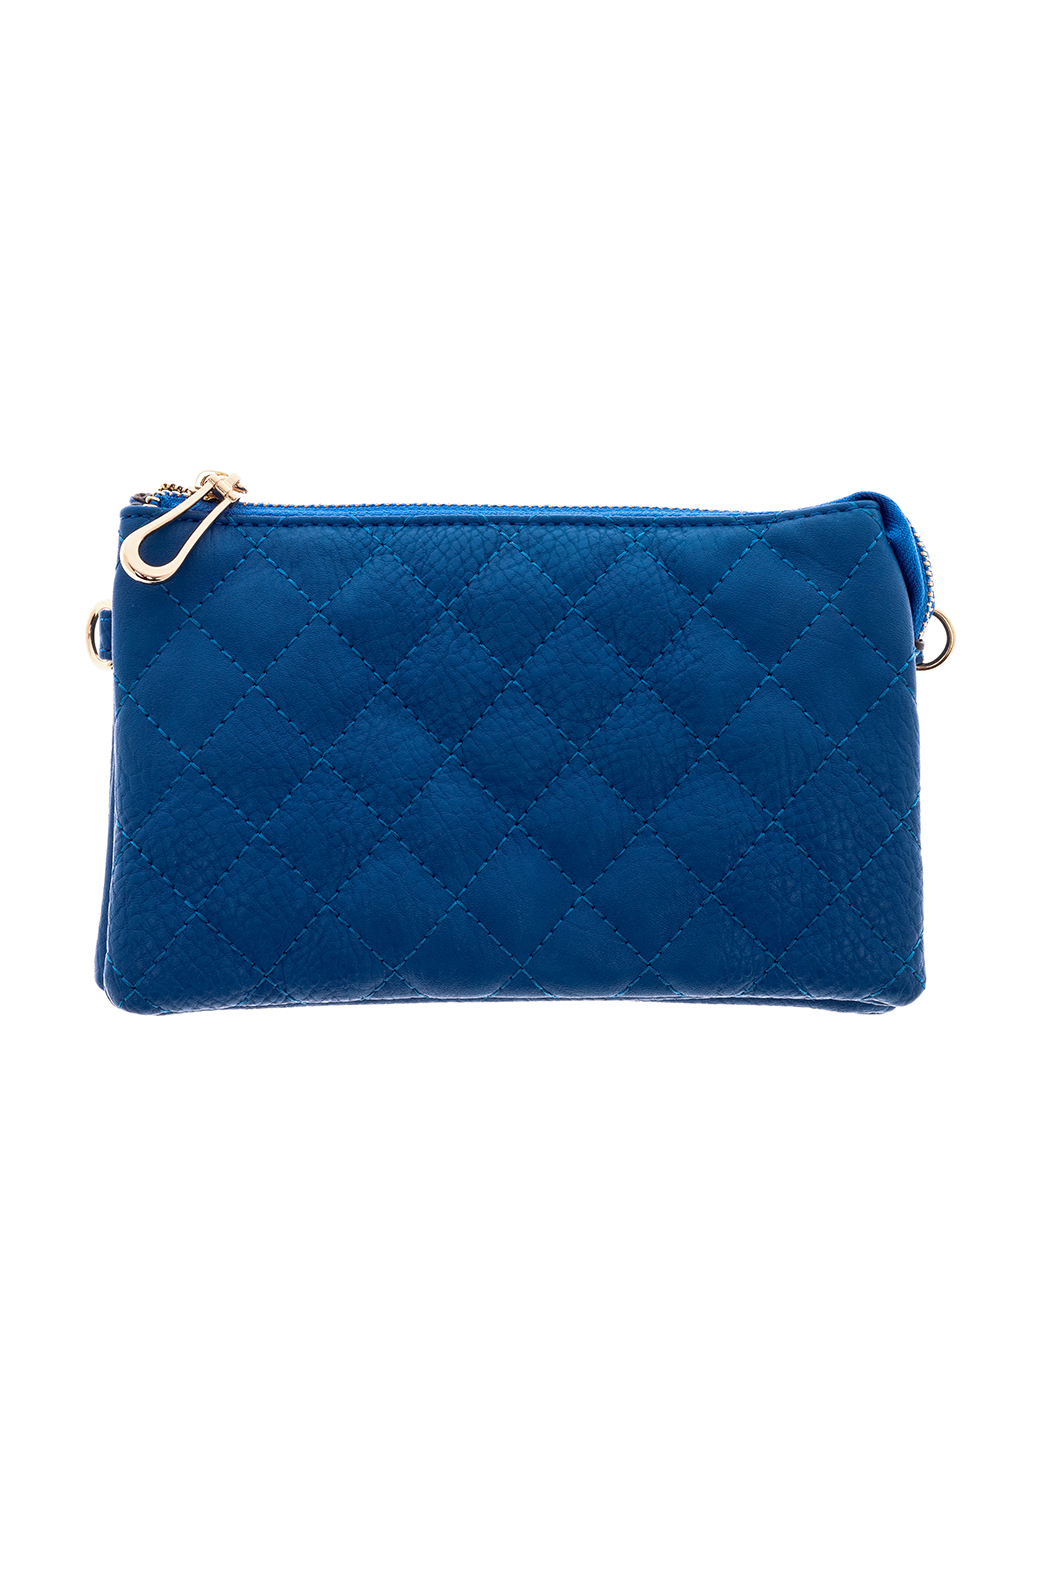 9fa4e85fd1a6 Empire Handbags Quilted Blue Crossbody from New York by Let s Bag It ...